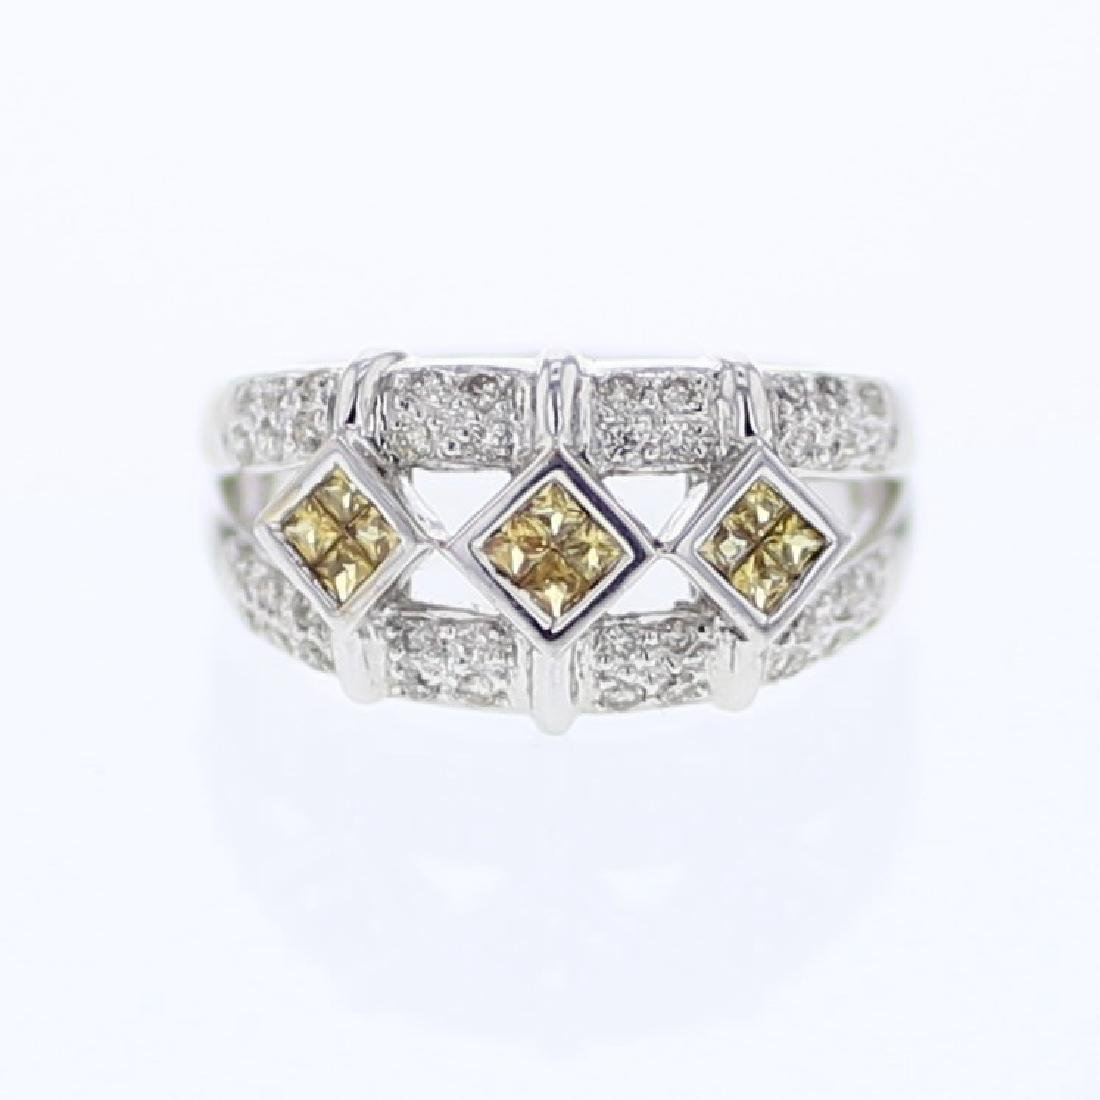 14KT White Gold Ladies Diamond Ring